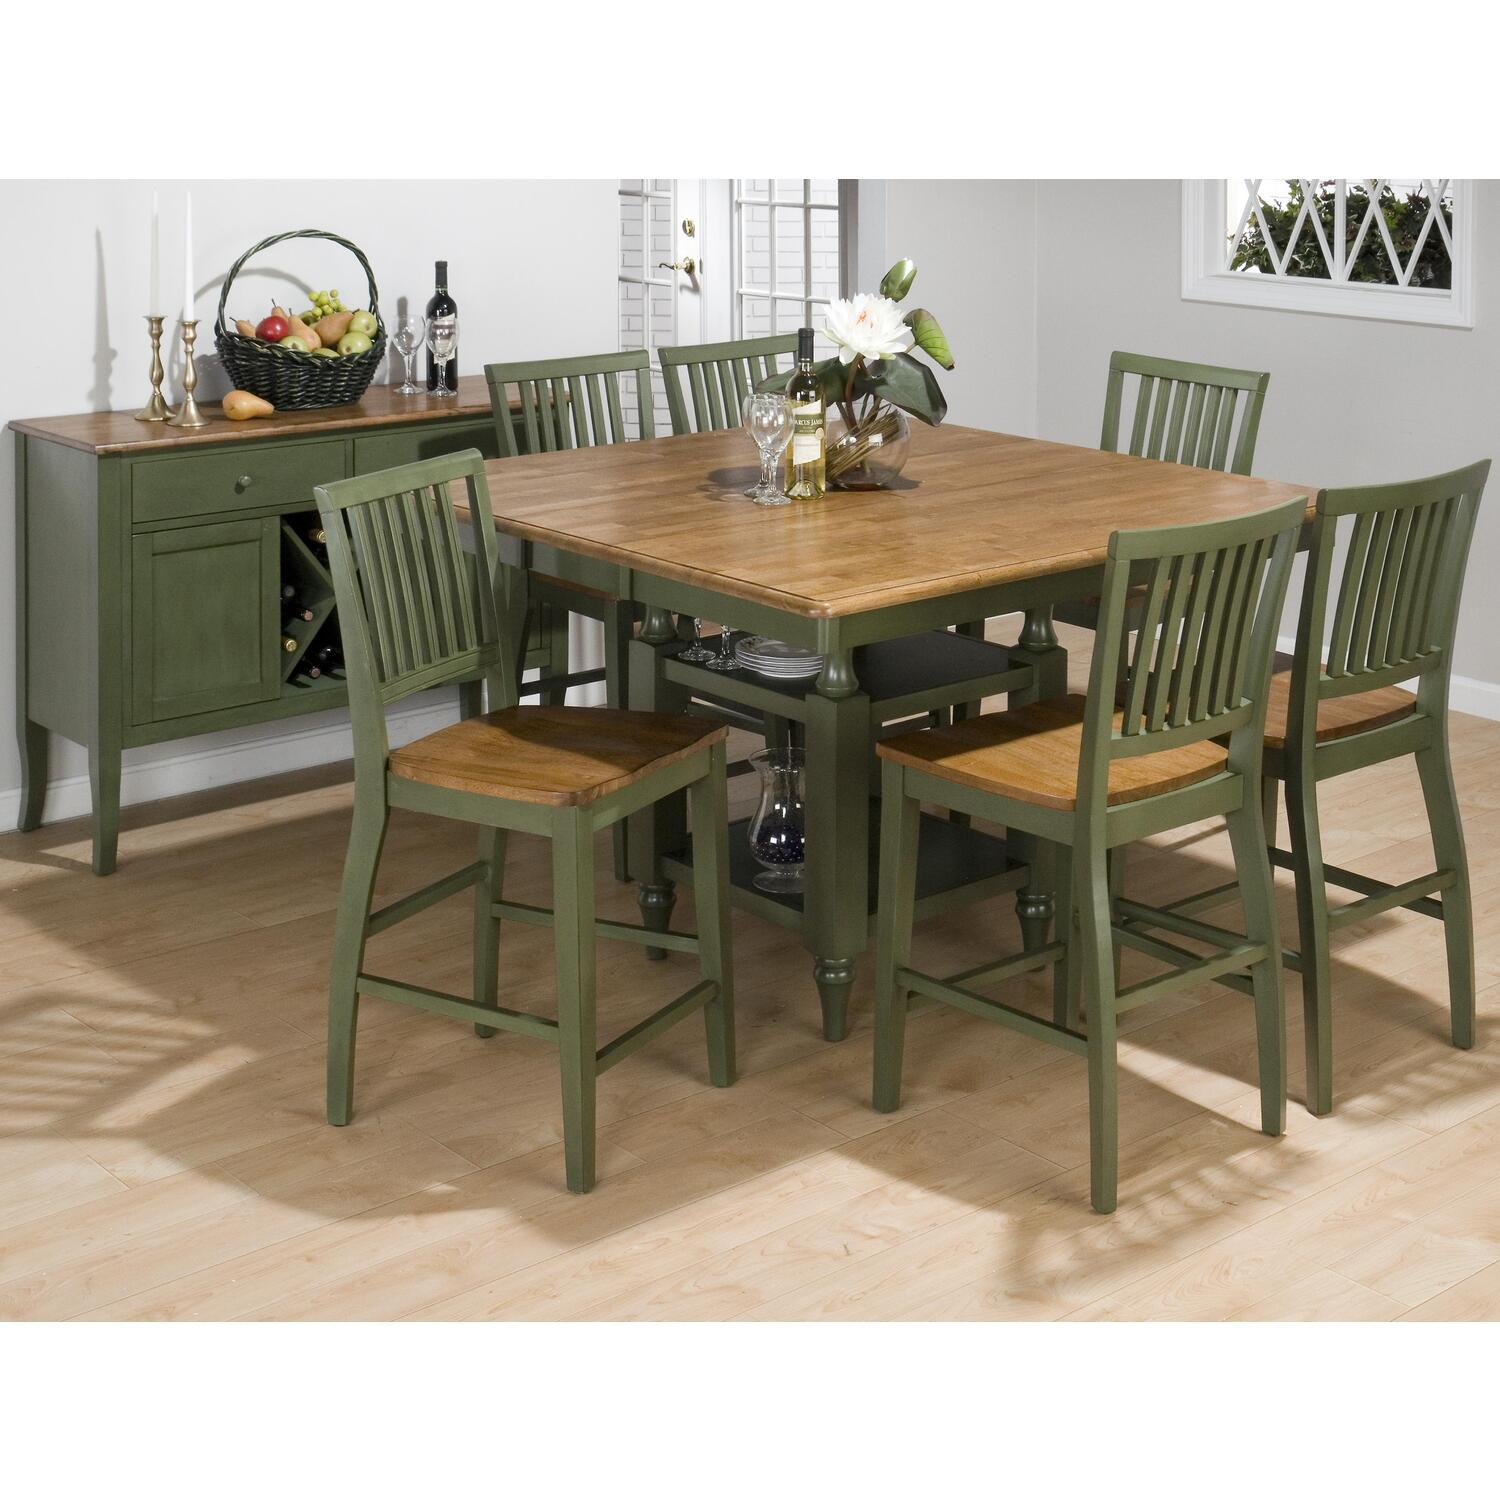 counter height 7 piece dining set w butterfly leaf by oj commerce 344